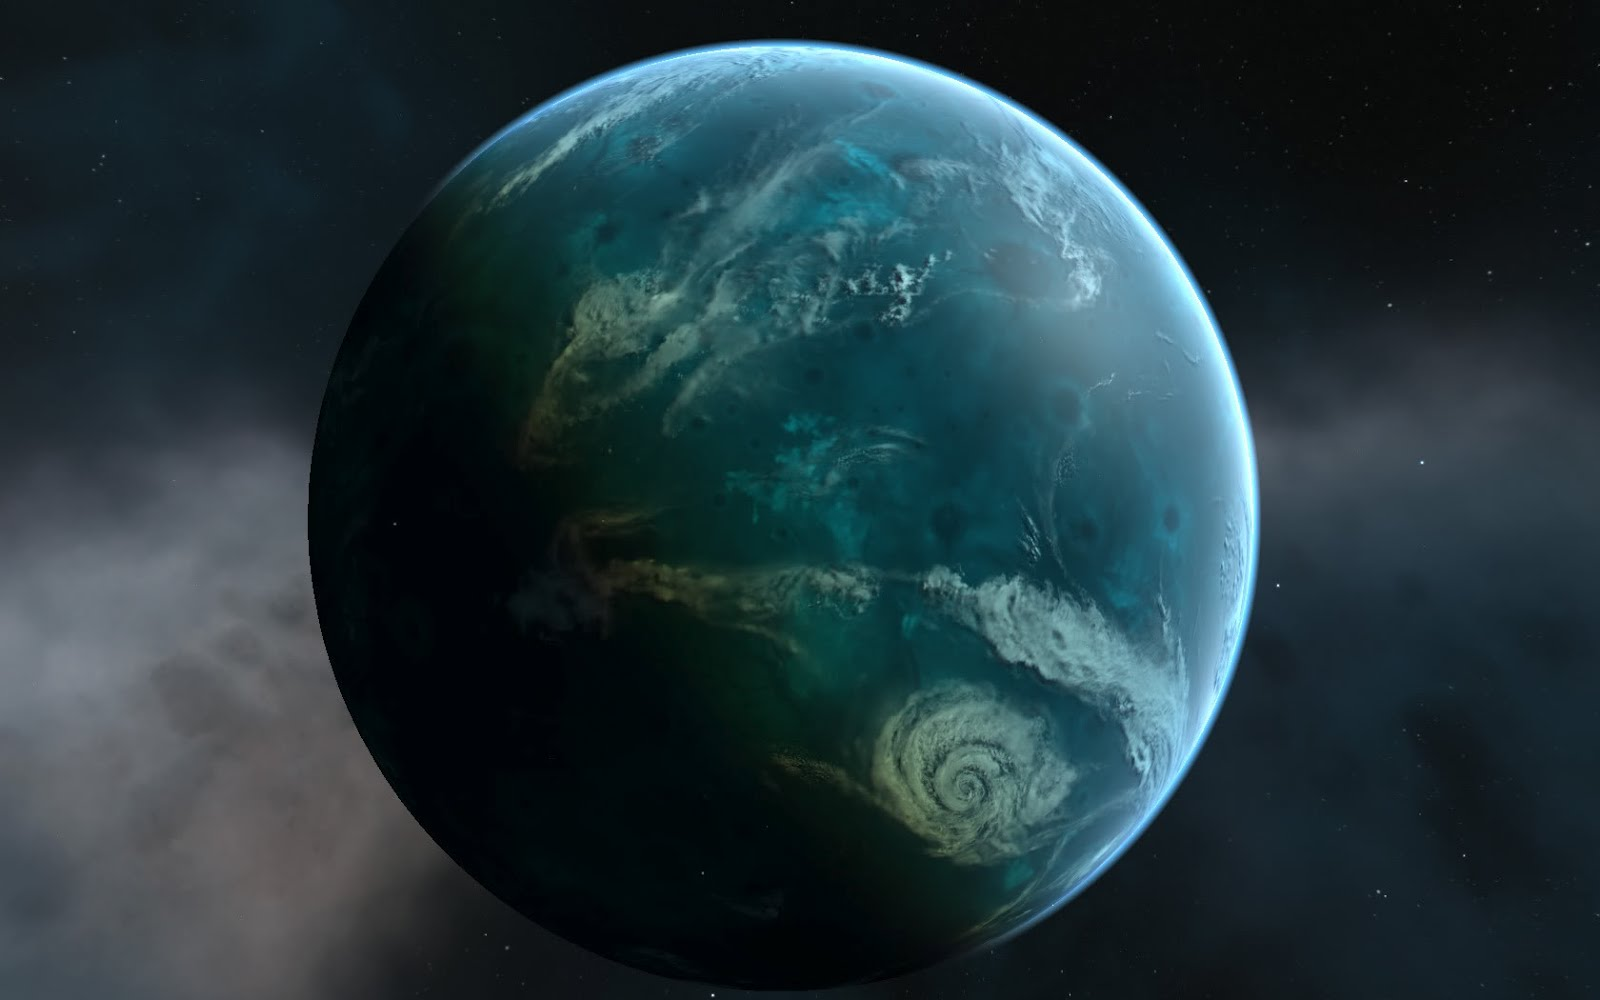 alien water planet - photo #29